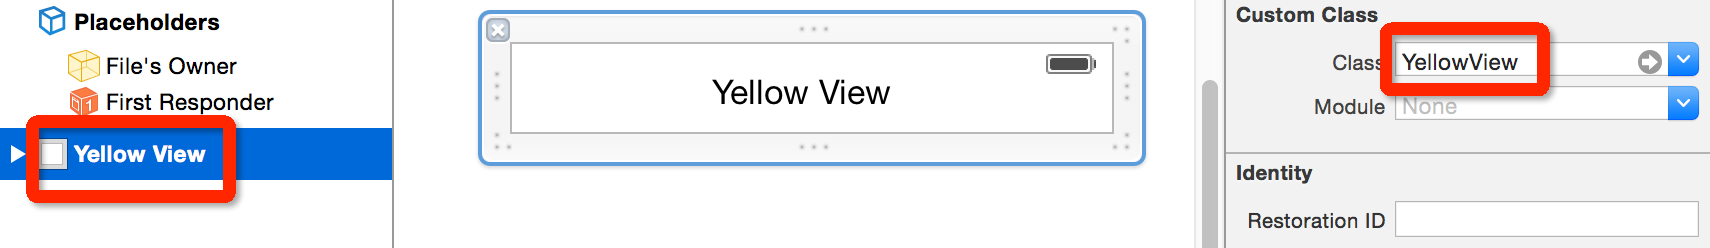 yellowview_xib.png